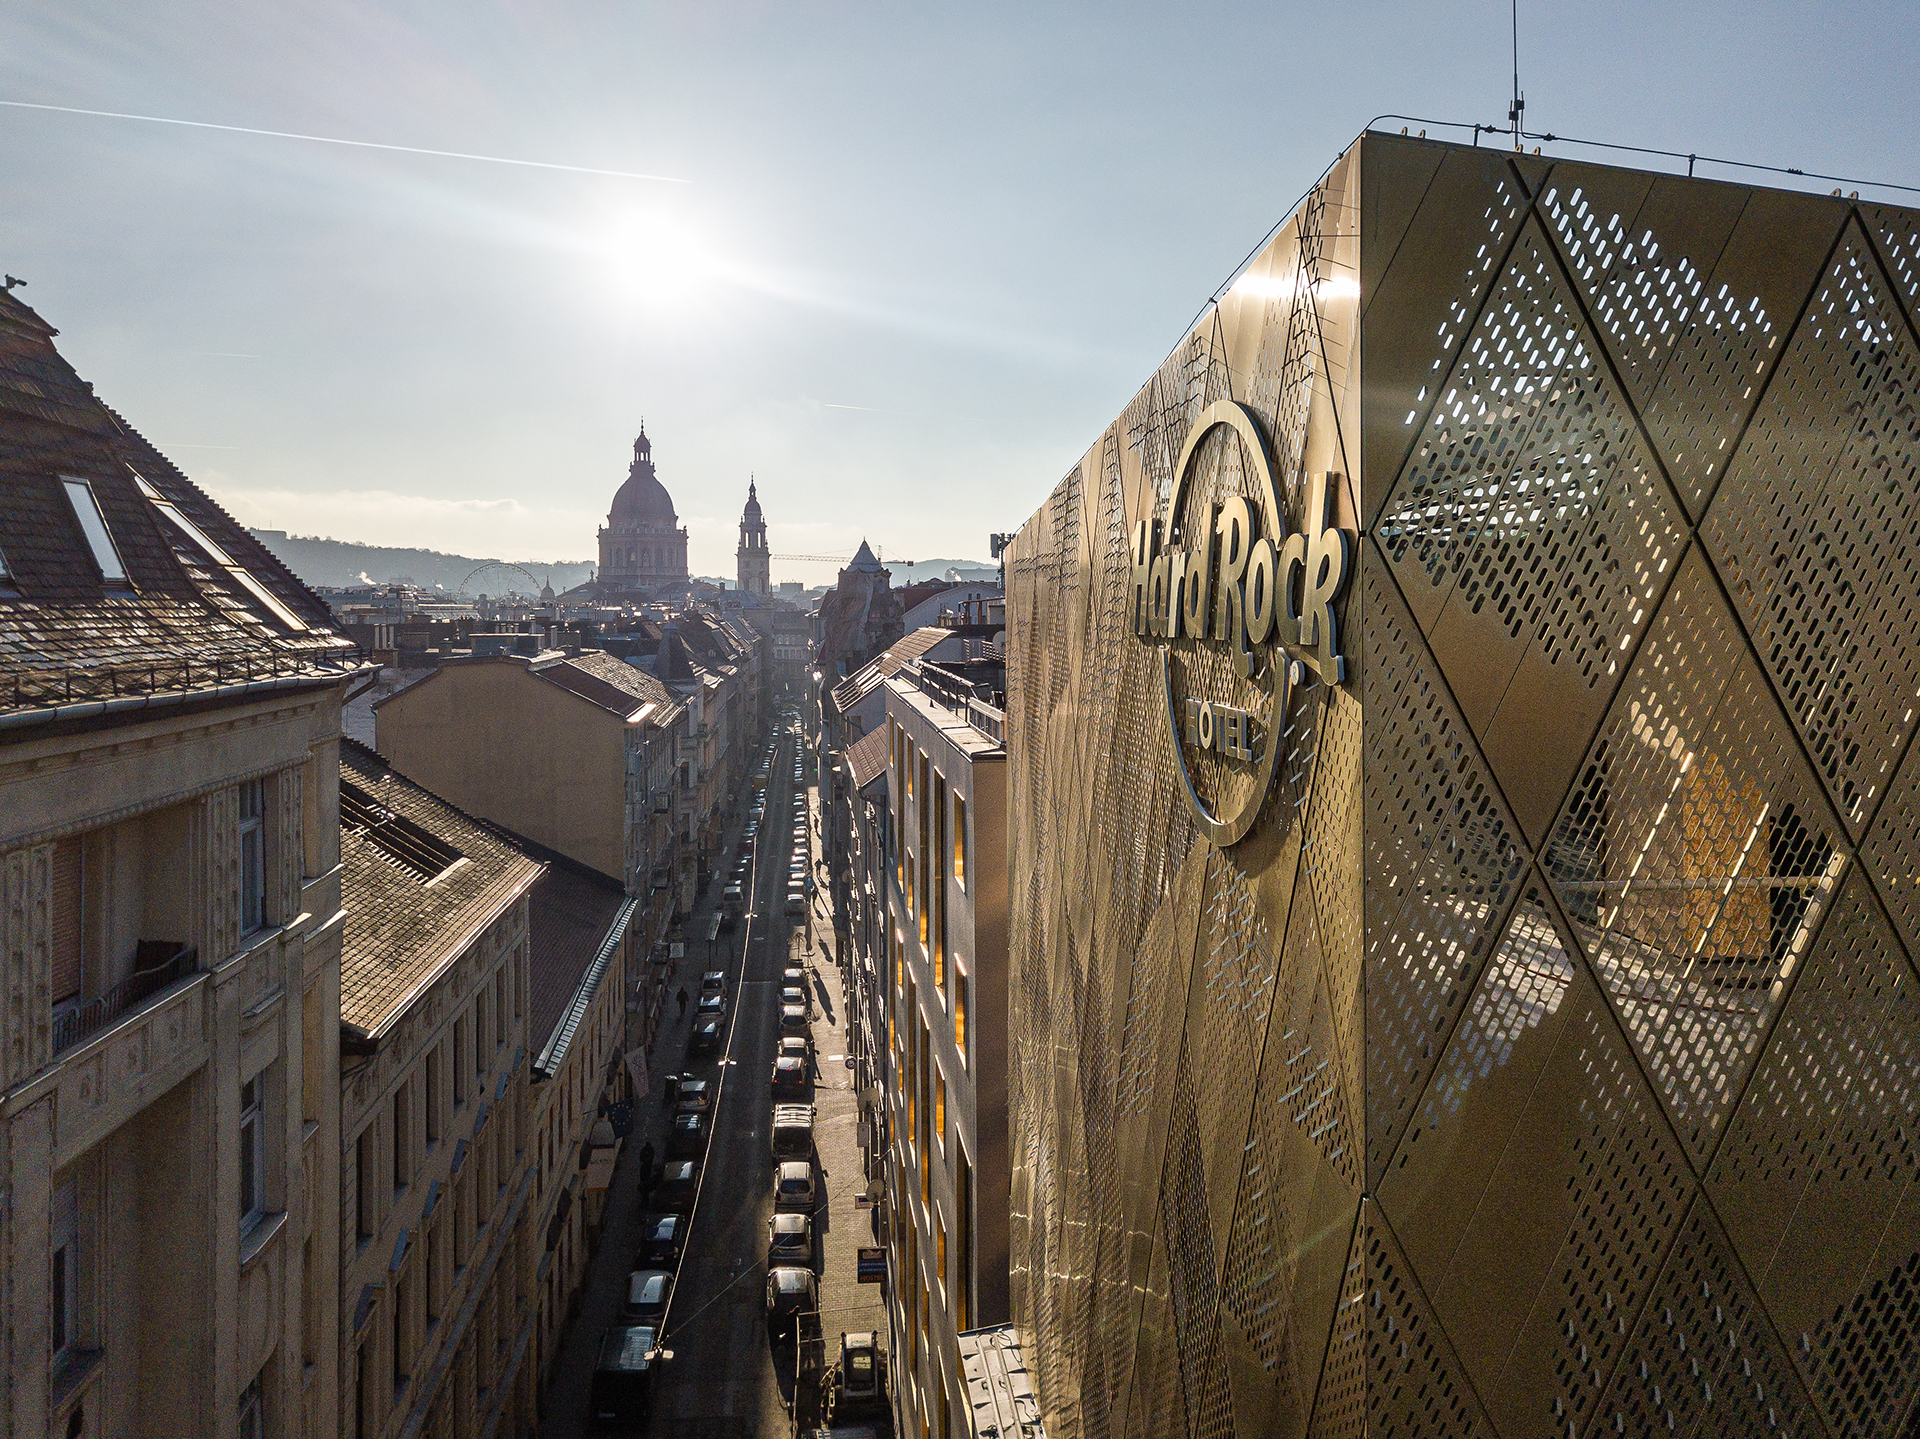 View showcasing Hard rock hotel and the street it's located on. Some Budapest buildings are visible. The hotel's walls are clad from Nordic Royal copper.